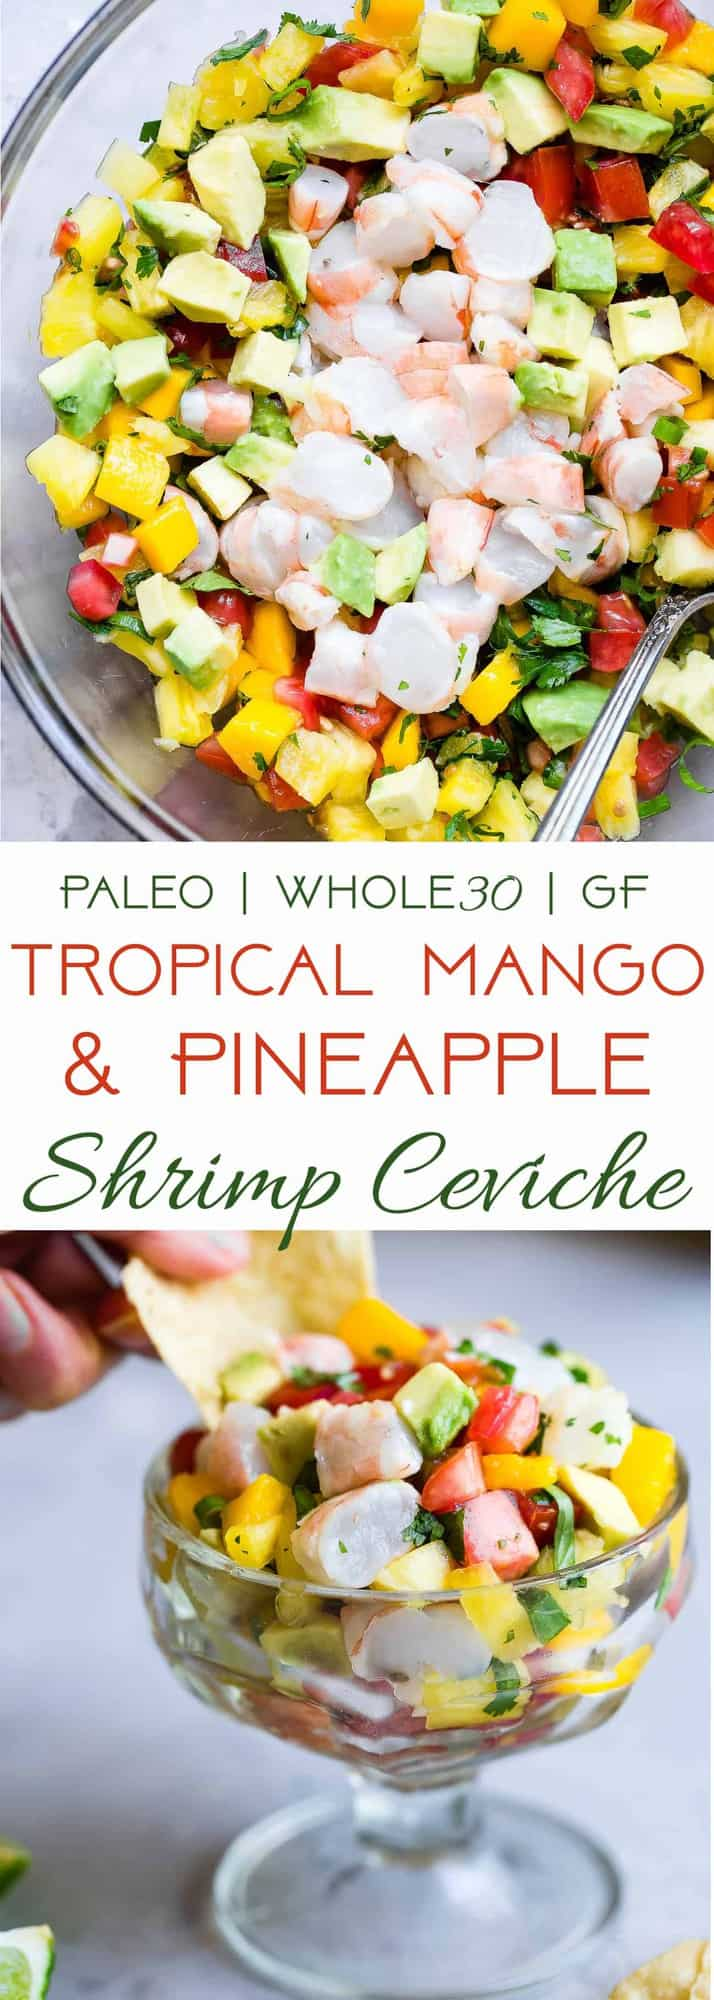 Pineapple Mango Shrimp Ceviche -A quick, easy and super healthy Ceviche Recipethat is under 150 calories, only 1 Freestyle point, paleo and whole30 friendly, gluten free and tastes like a tropical vacation! You gotta try this! | #Foodfaithfitness | #Glutenfree #Paleo #WeightWatchers #Whole30 #Healthy